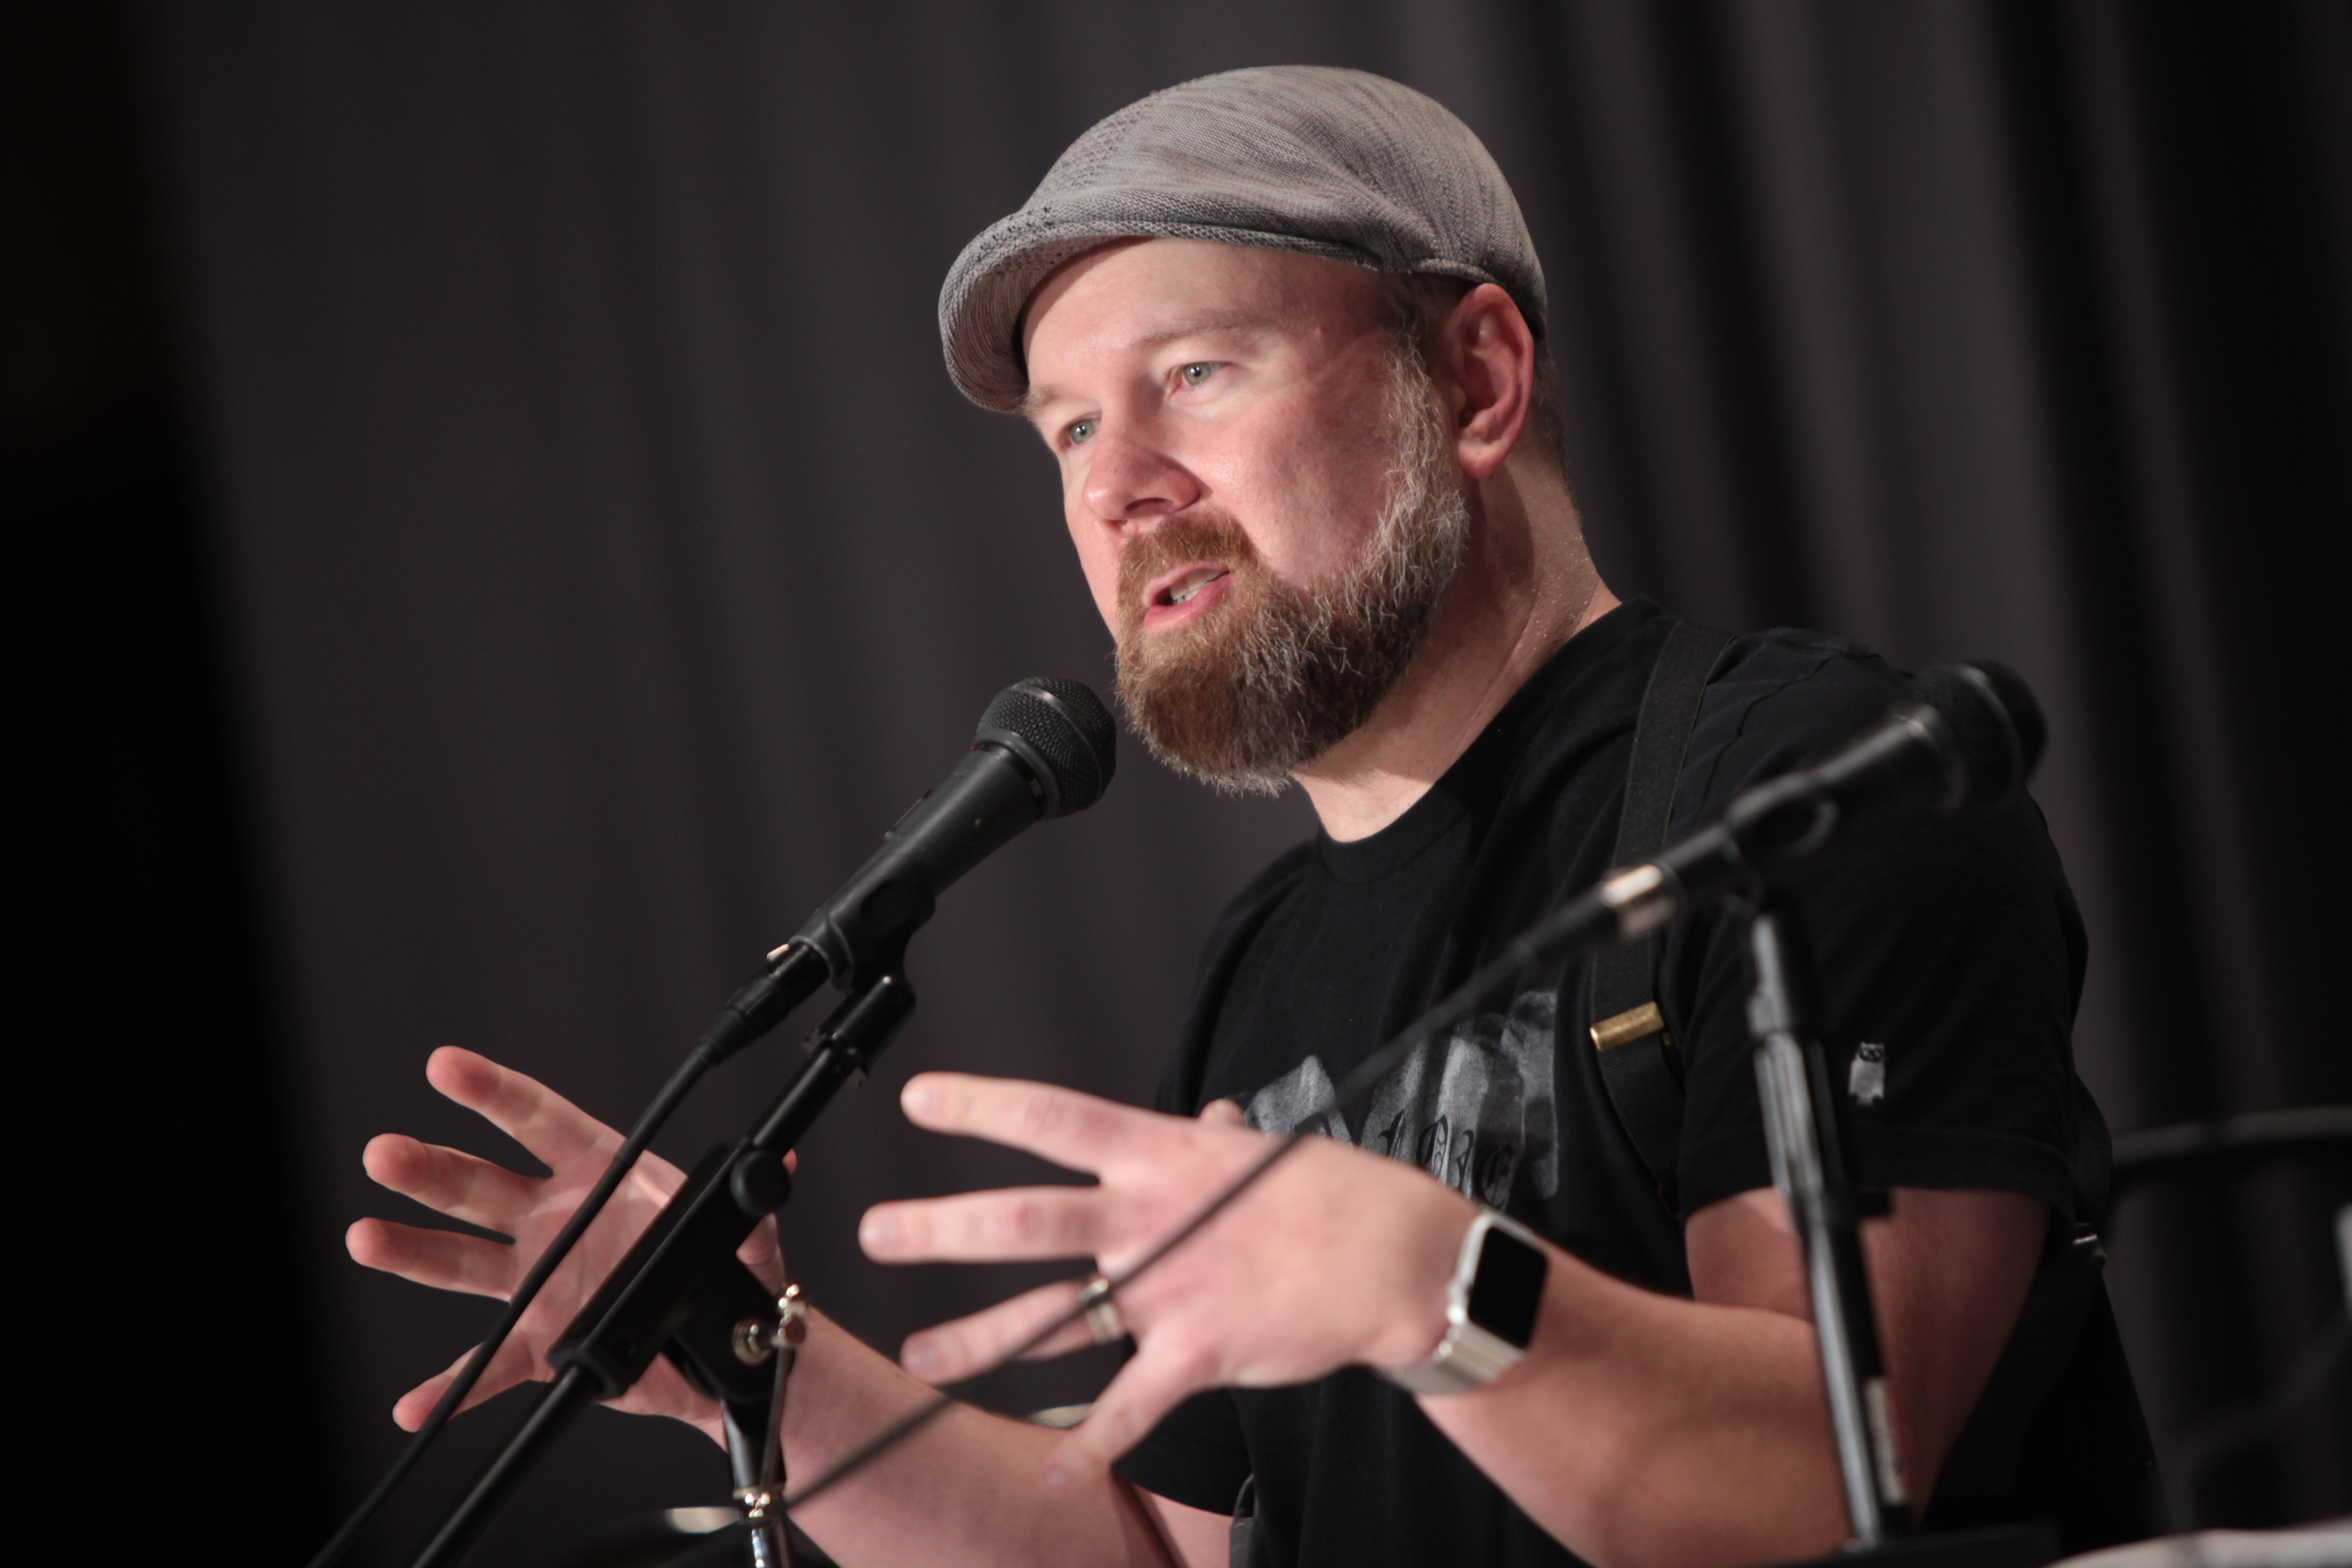 christopher sabat movies and tv shows